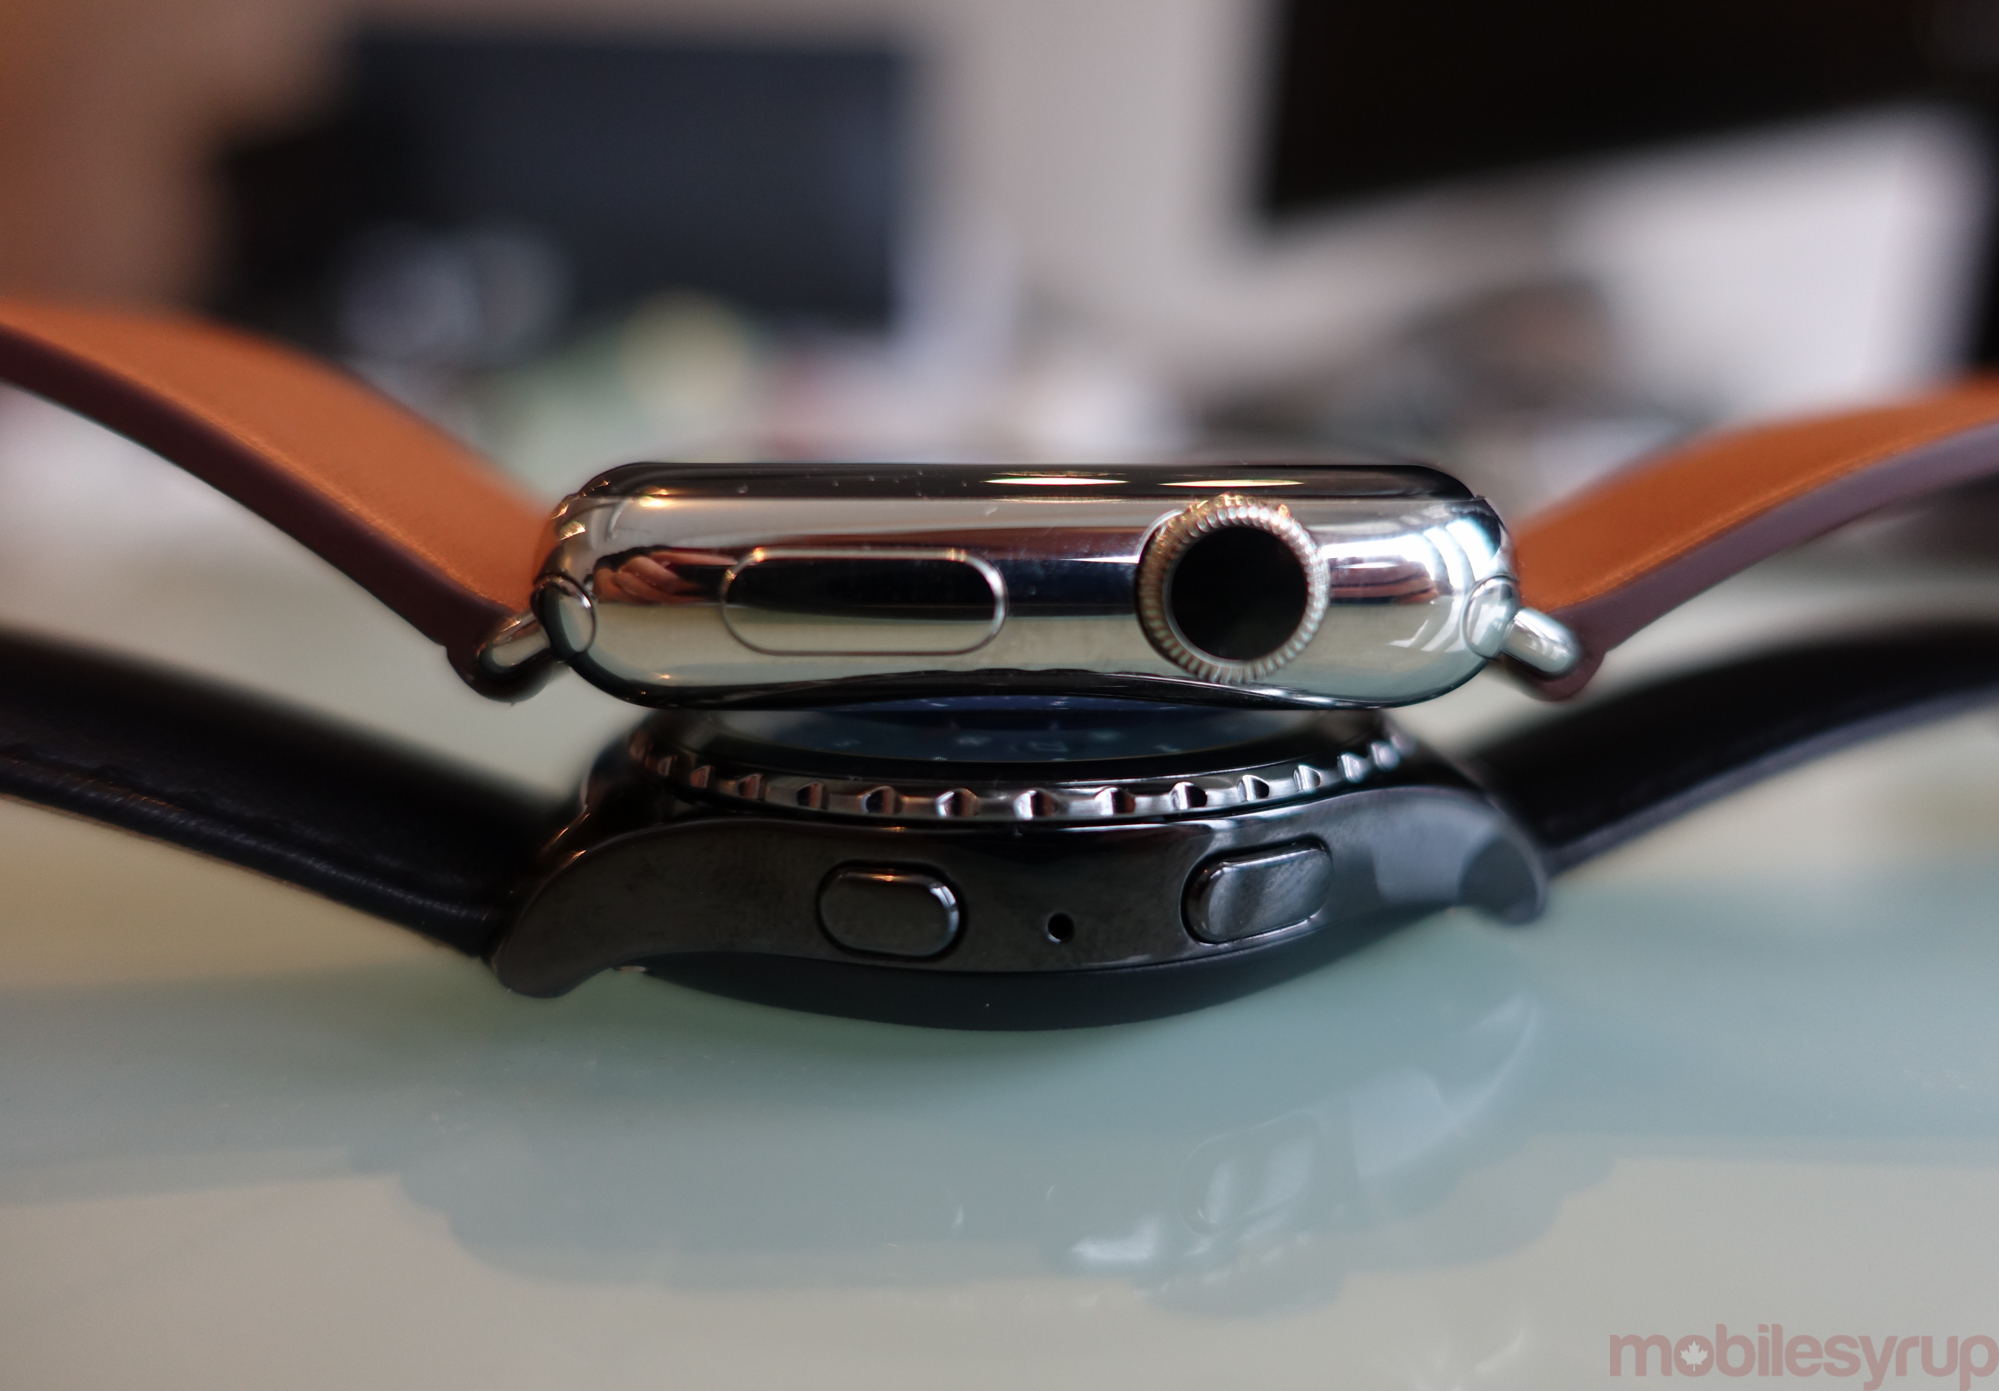 samsunggears2review-01798